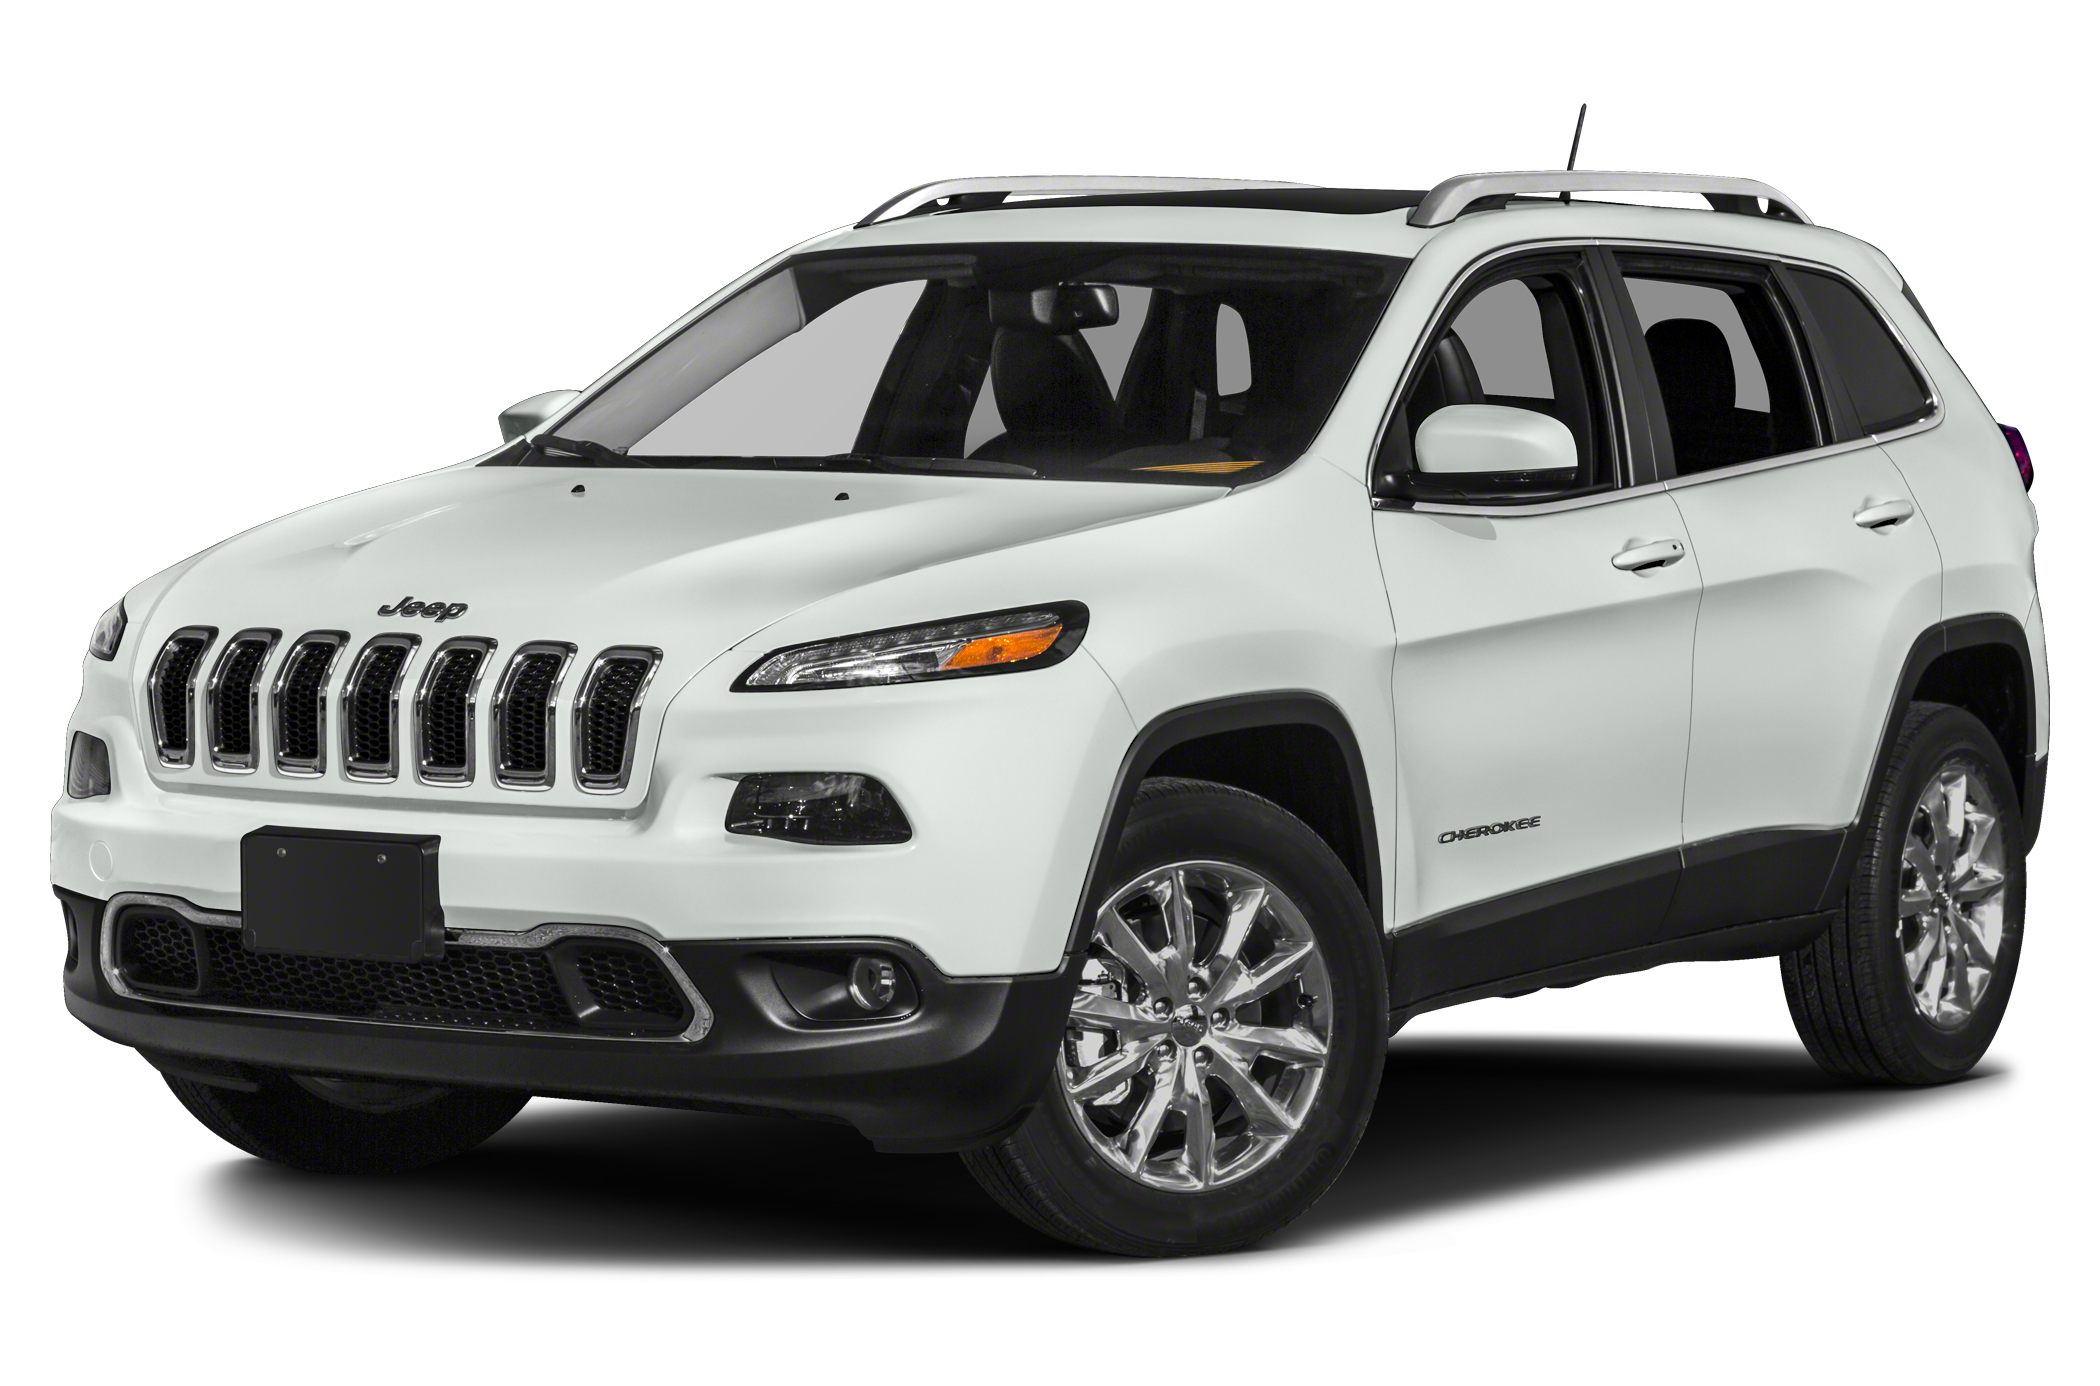 2014 Jeep Cherokee Limited SUV for sale in Springfield for $33,775 with 0 miles